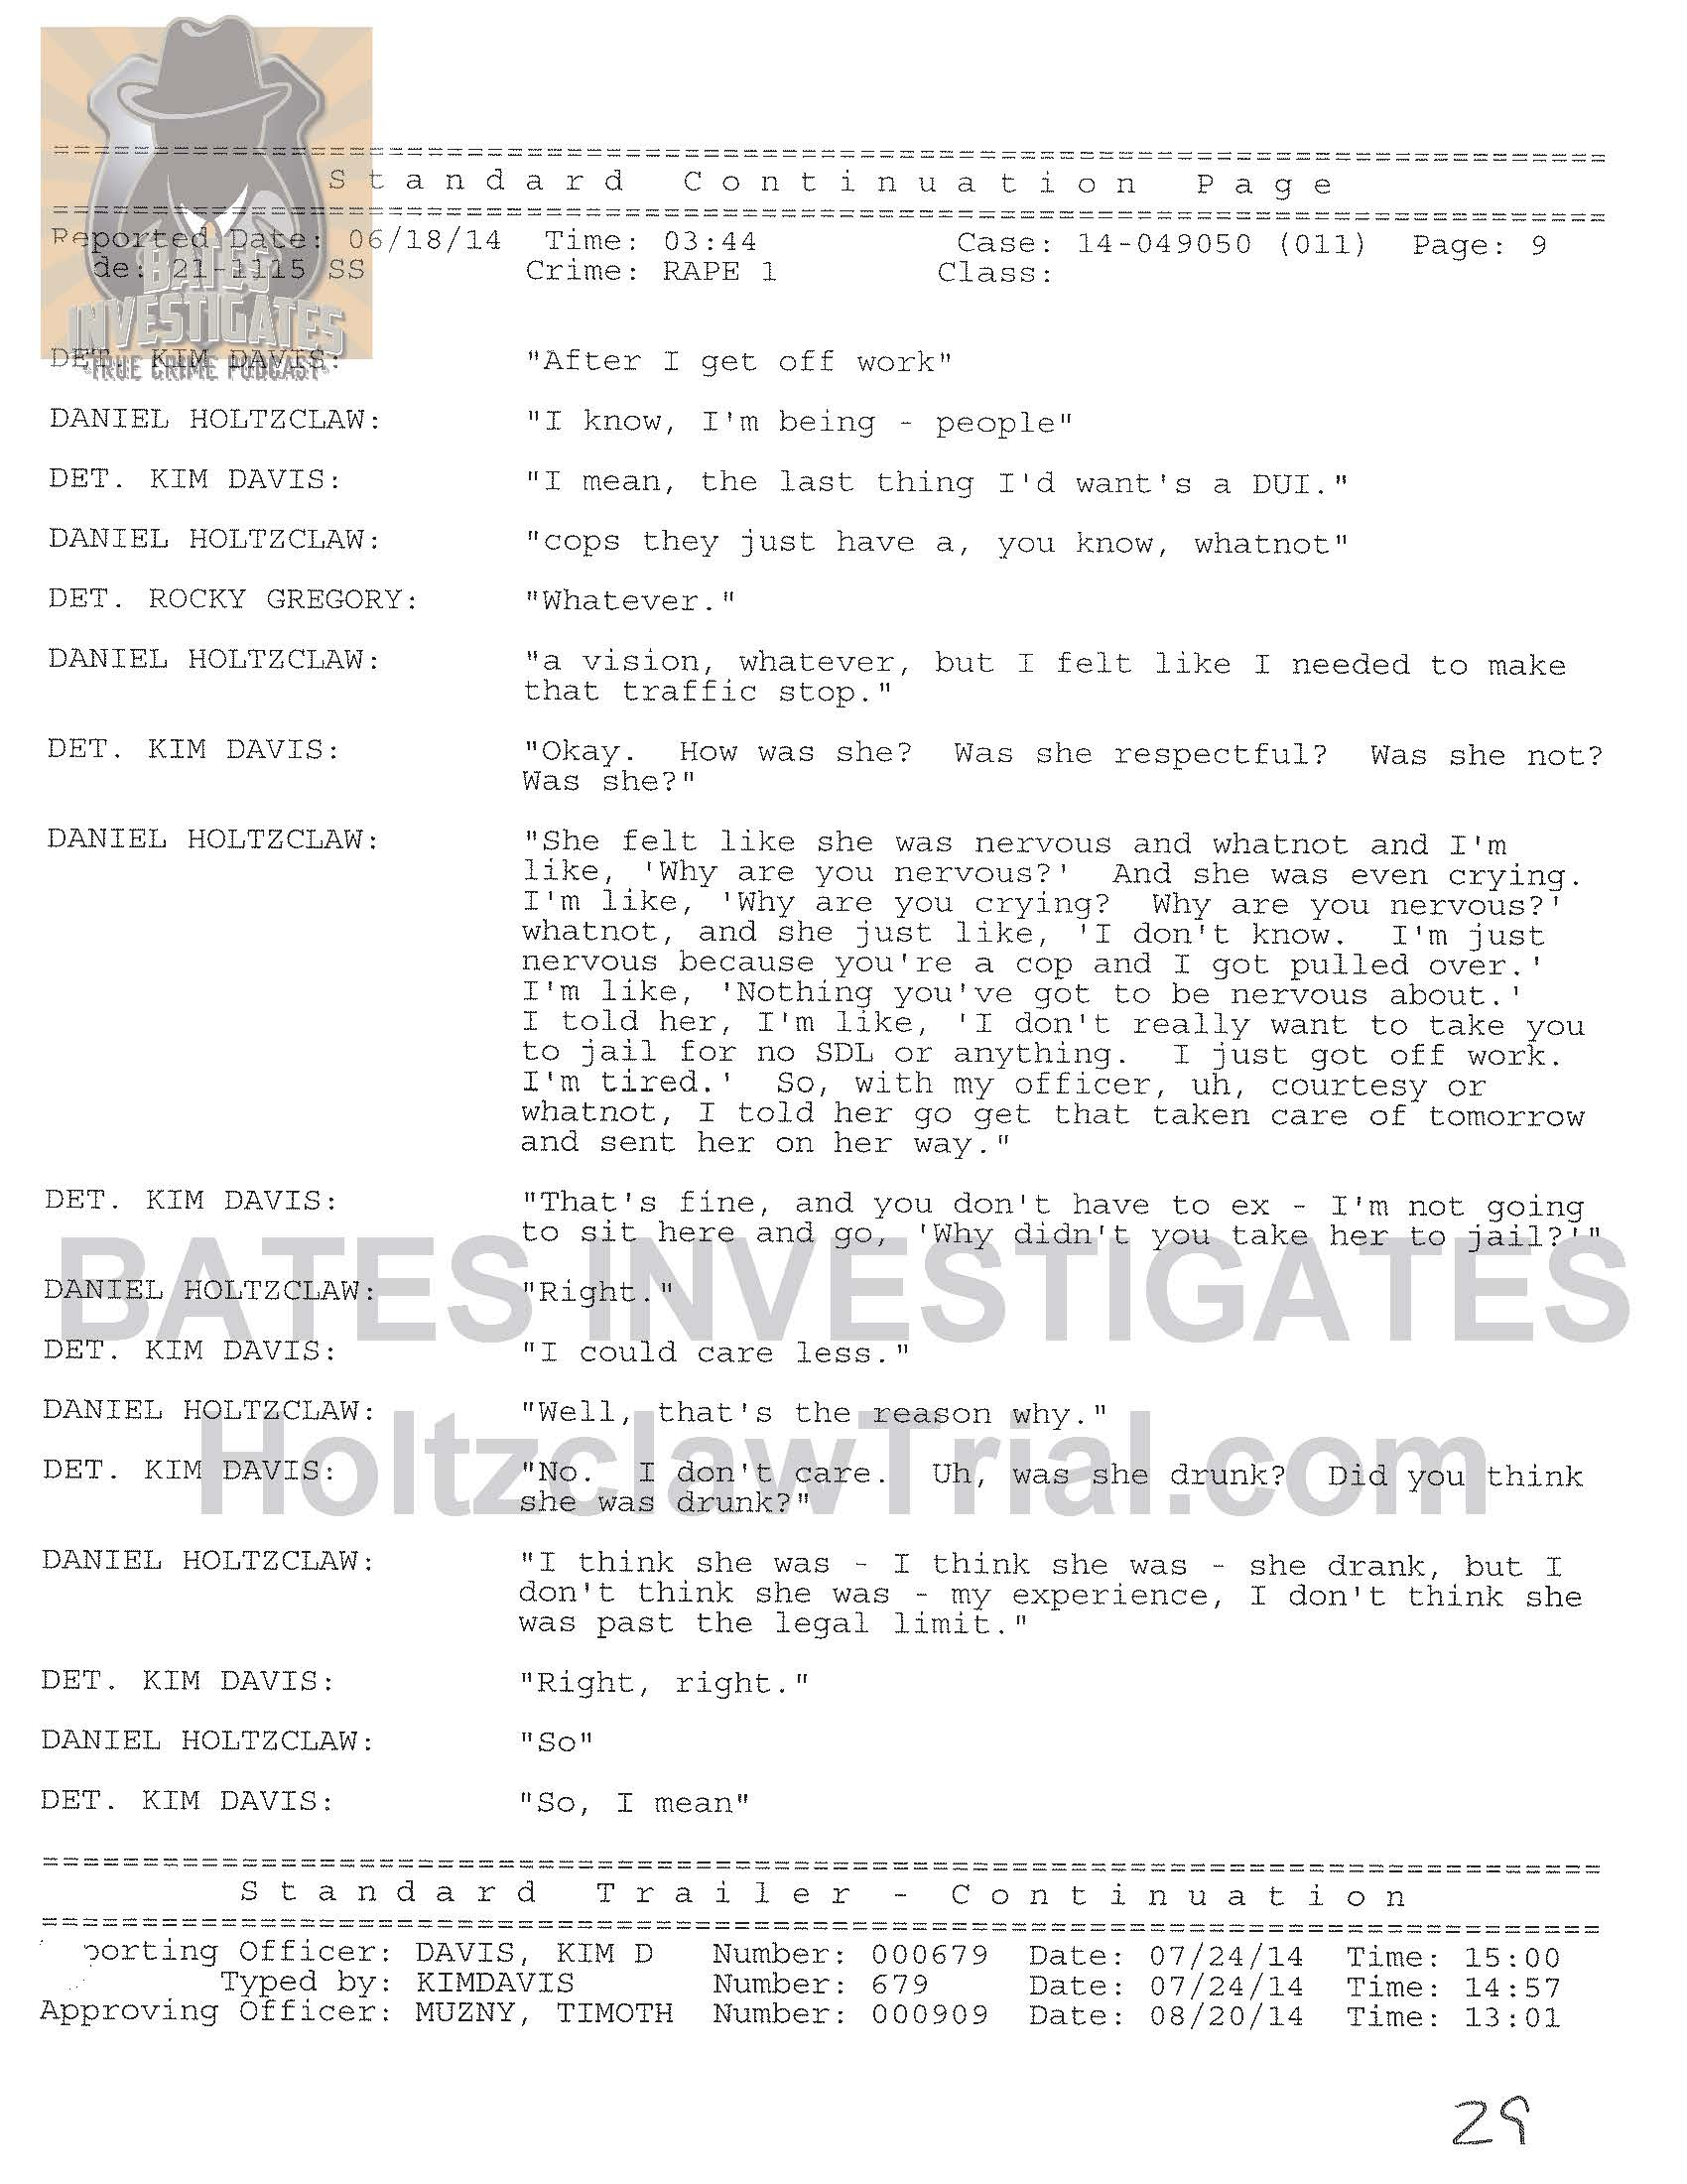 Holtzclaw Interrogation Transcript - Ep02 Redacted_Page_09.jpg